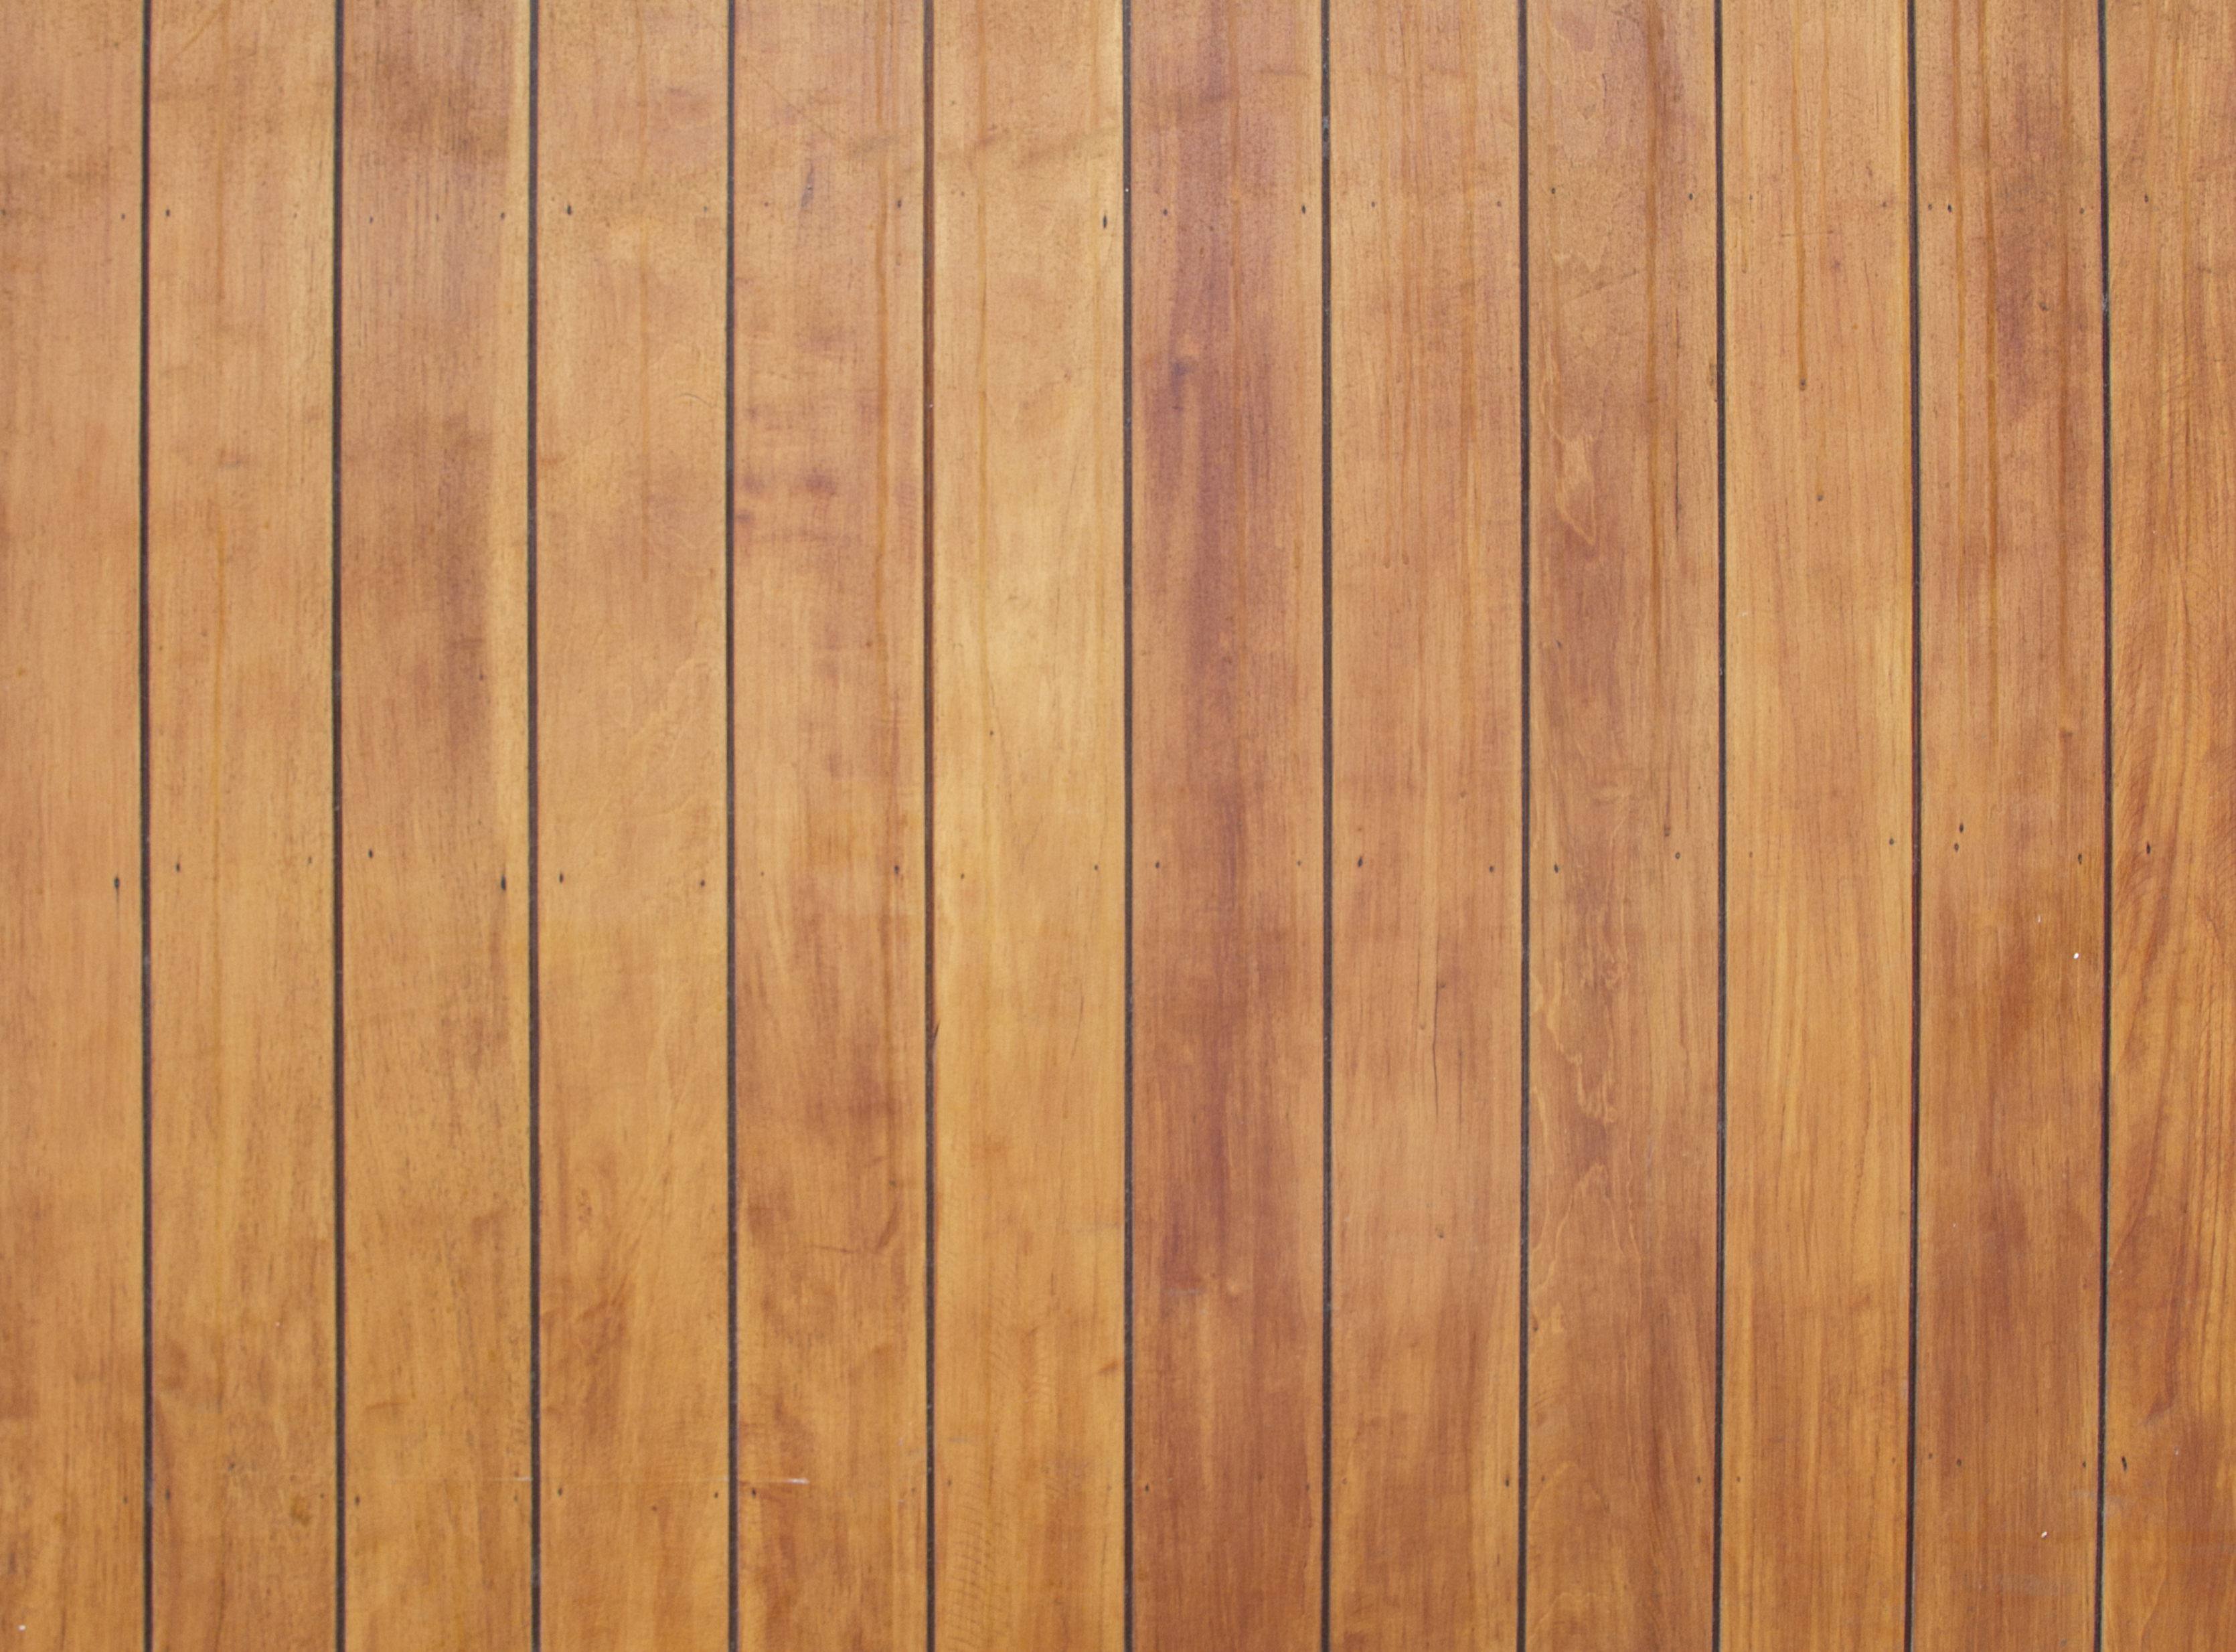 Wood Panels Texture